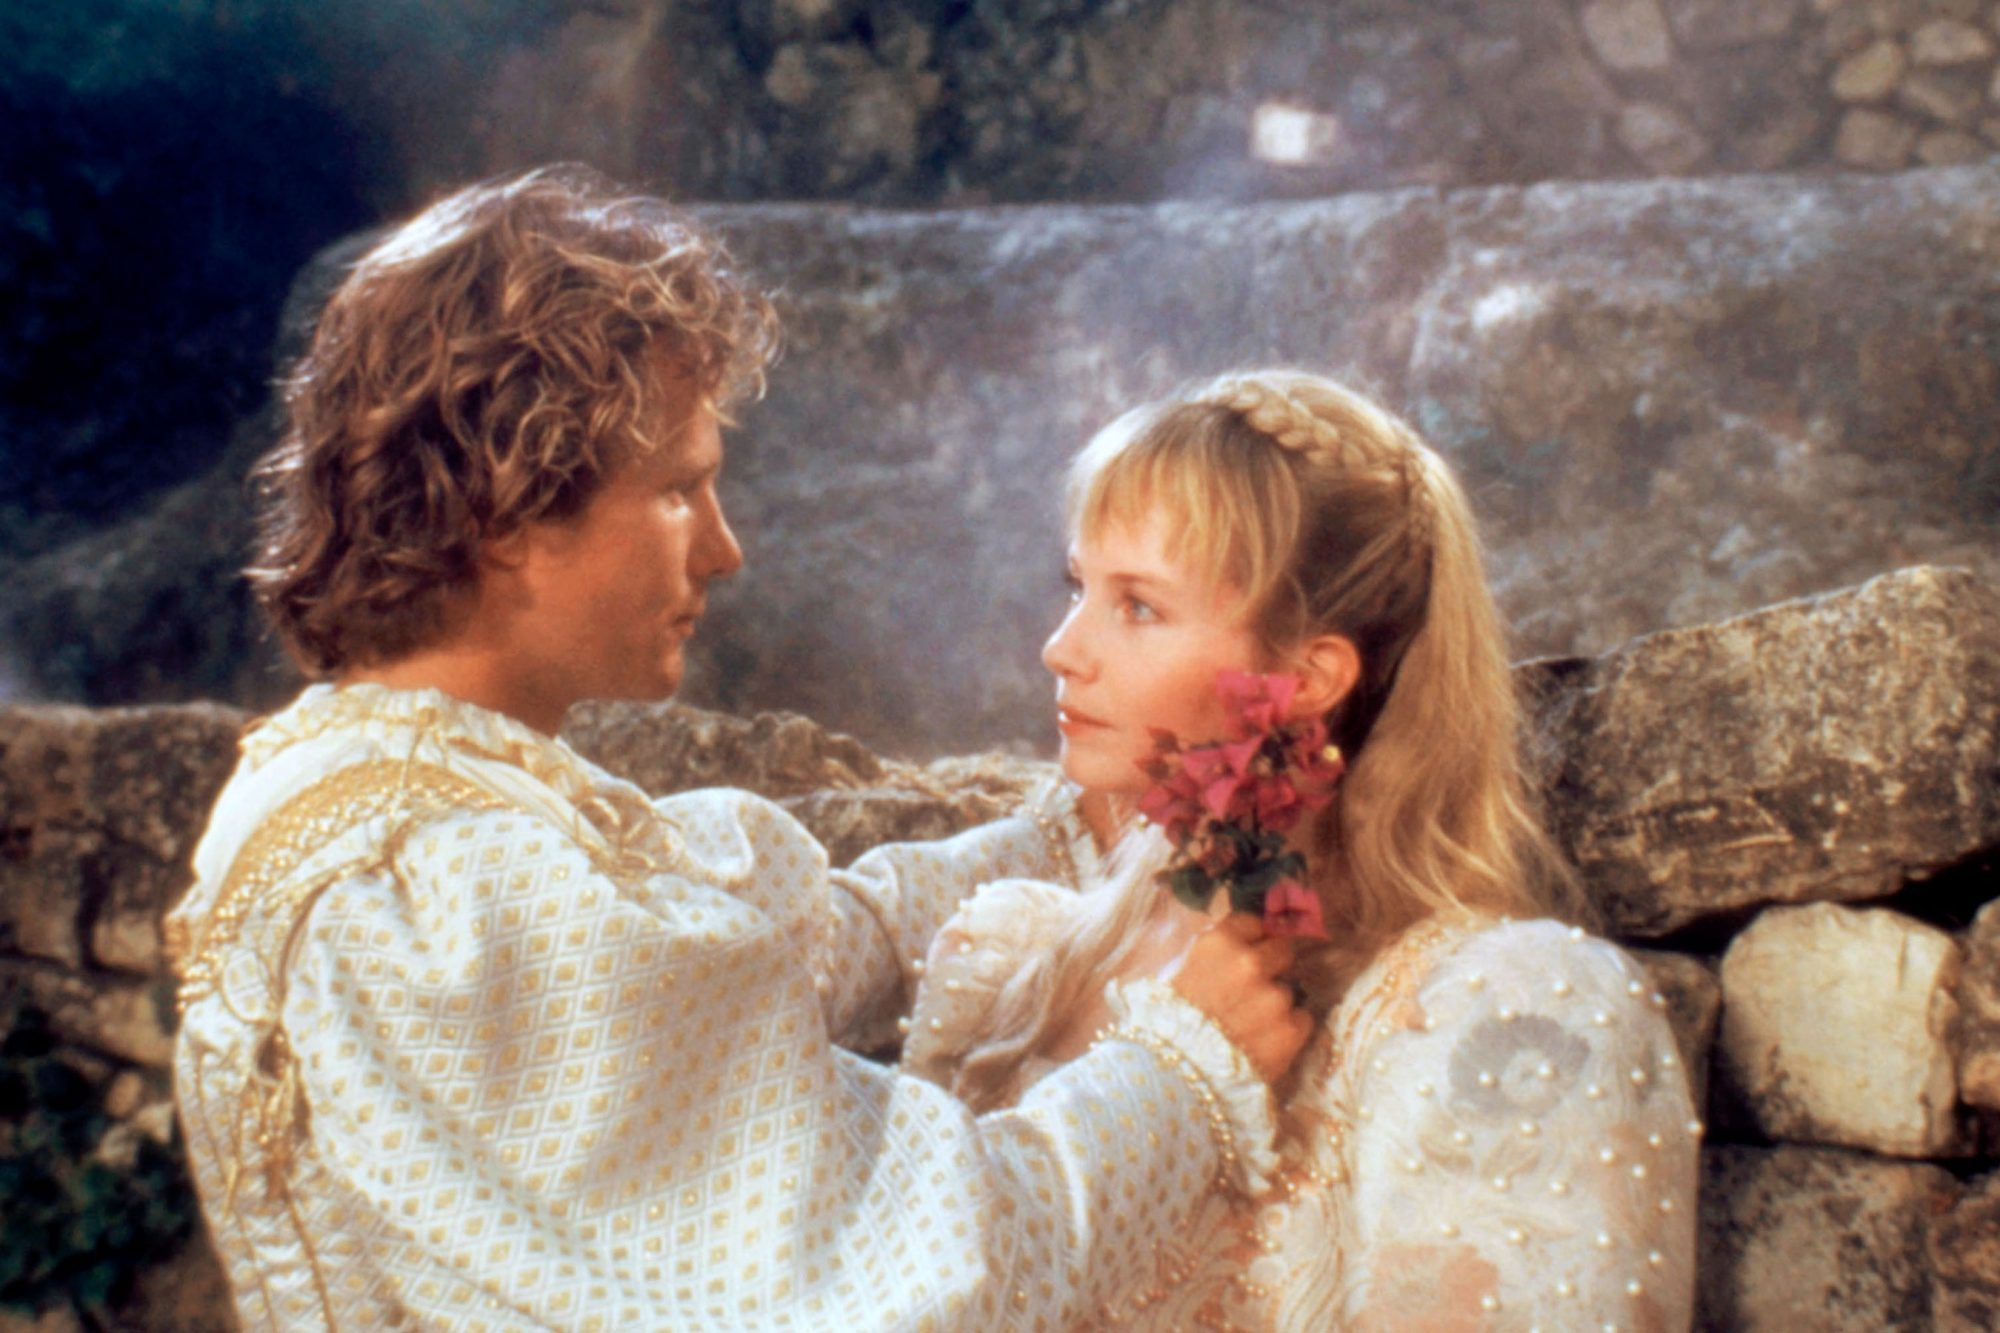 BEAUTY AND THE BEAST, John Savage, Rebecca De Mornay, 1987, (c)Cannon Films/courtesy Everett Collect